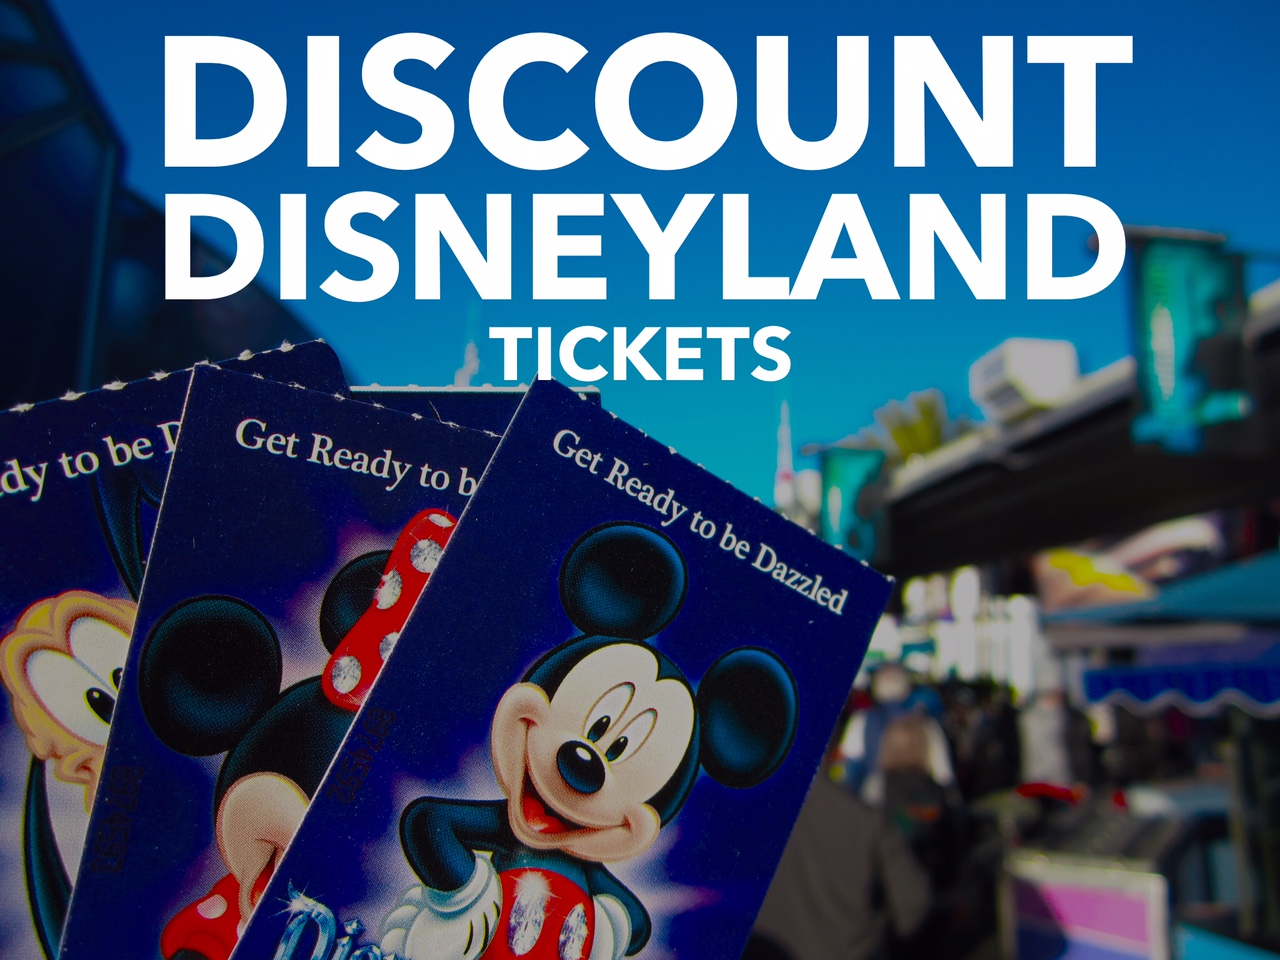 disneyland florida ticket: